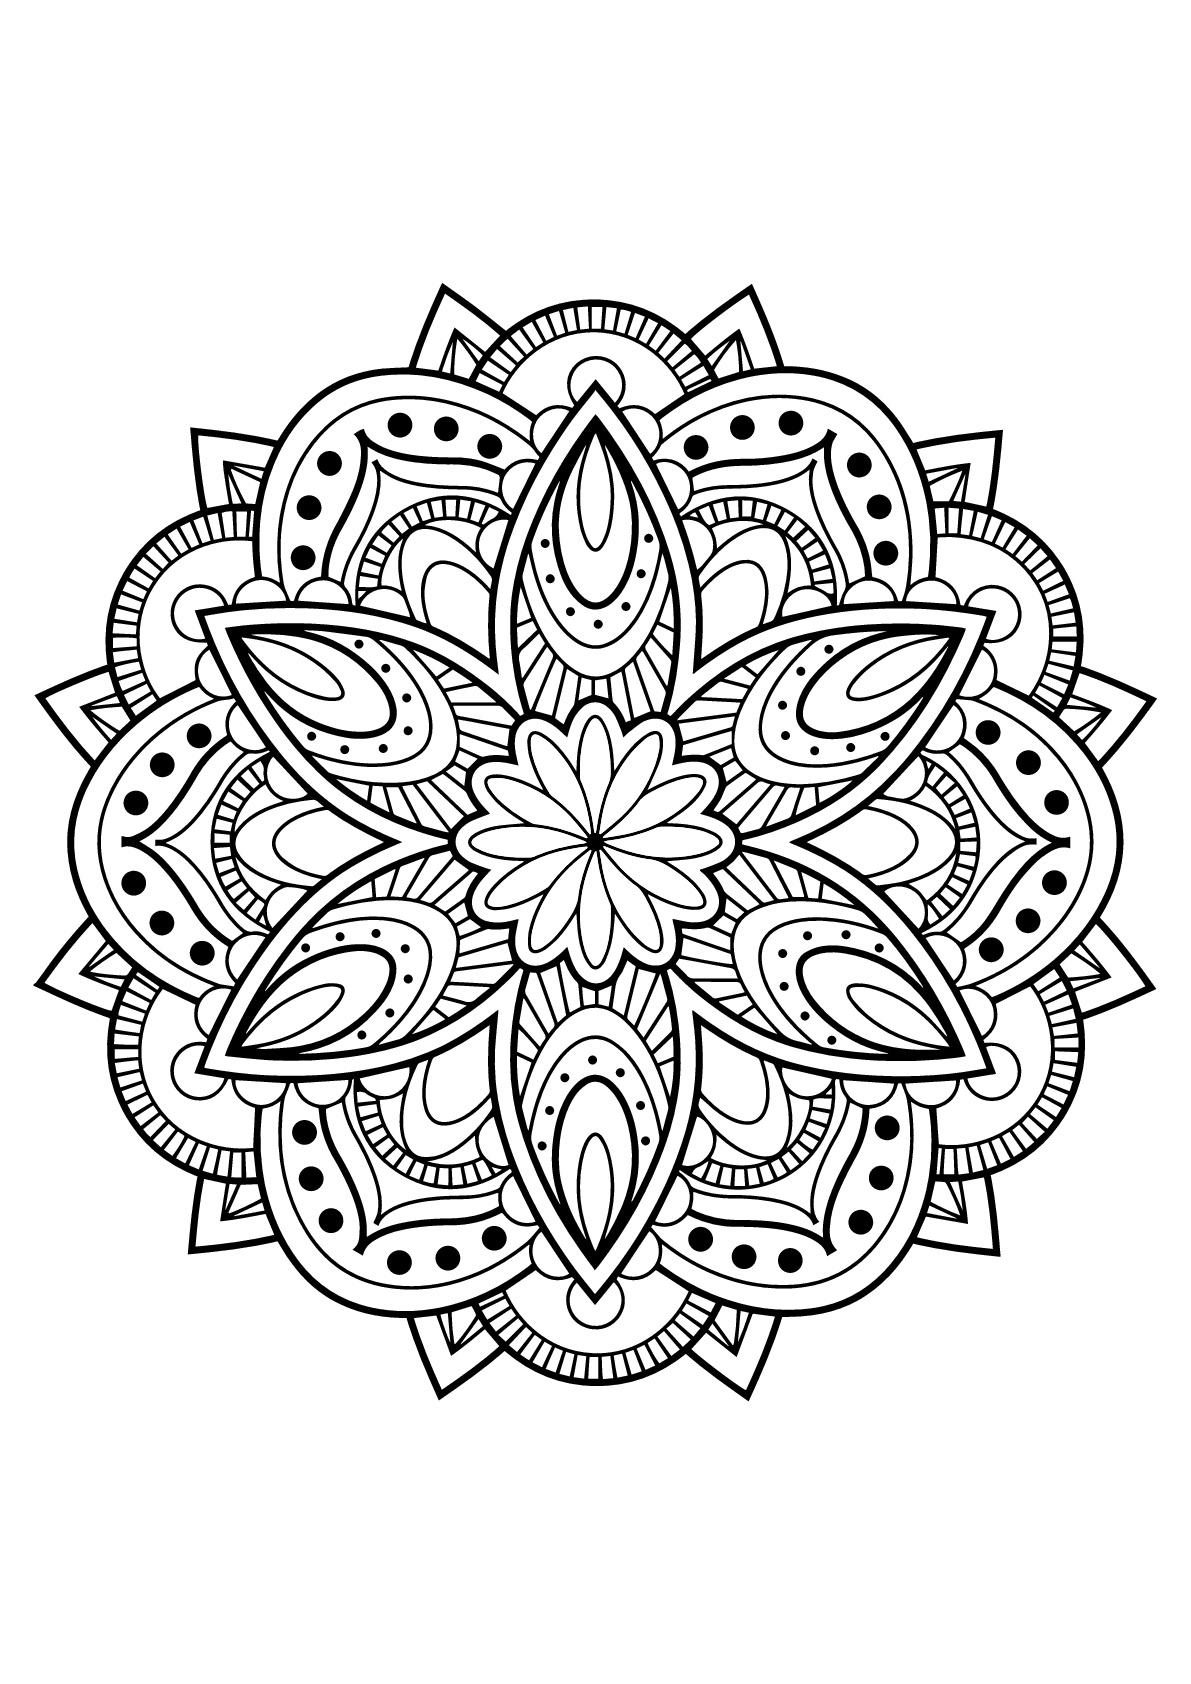 free printable mandalas to color for adults get this free mandala coloring pages for adults to print mandalas printable free adults for color to